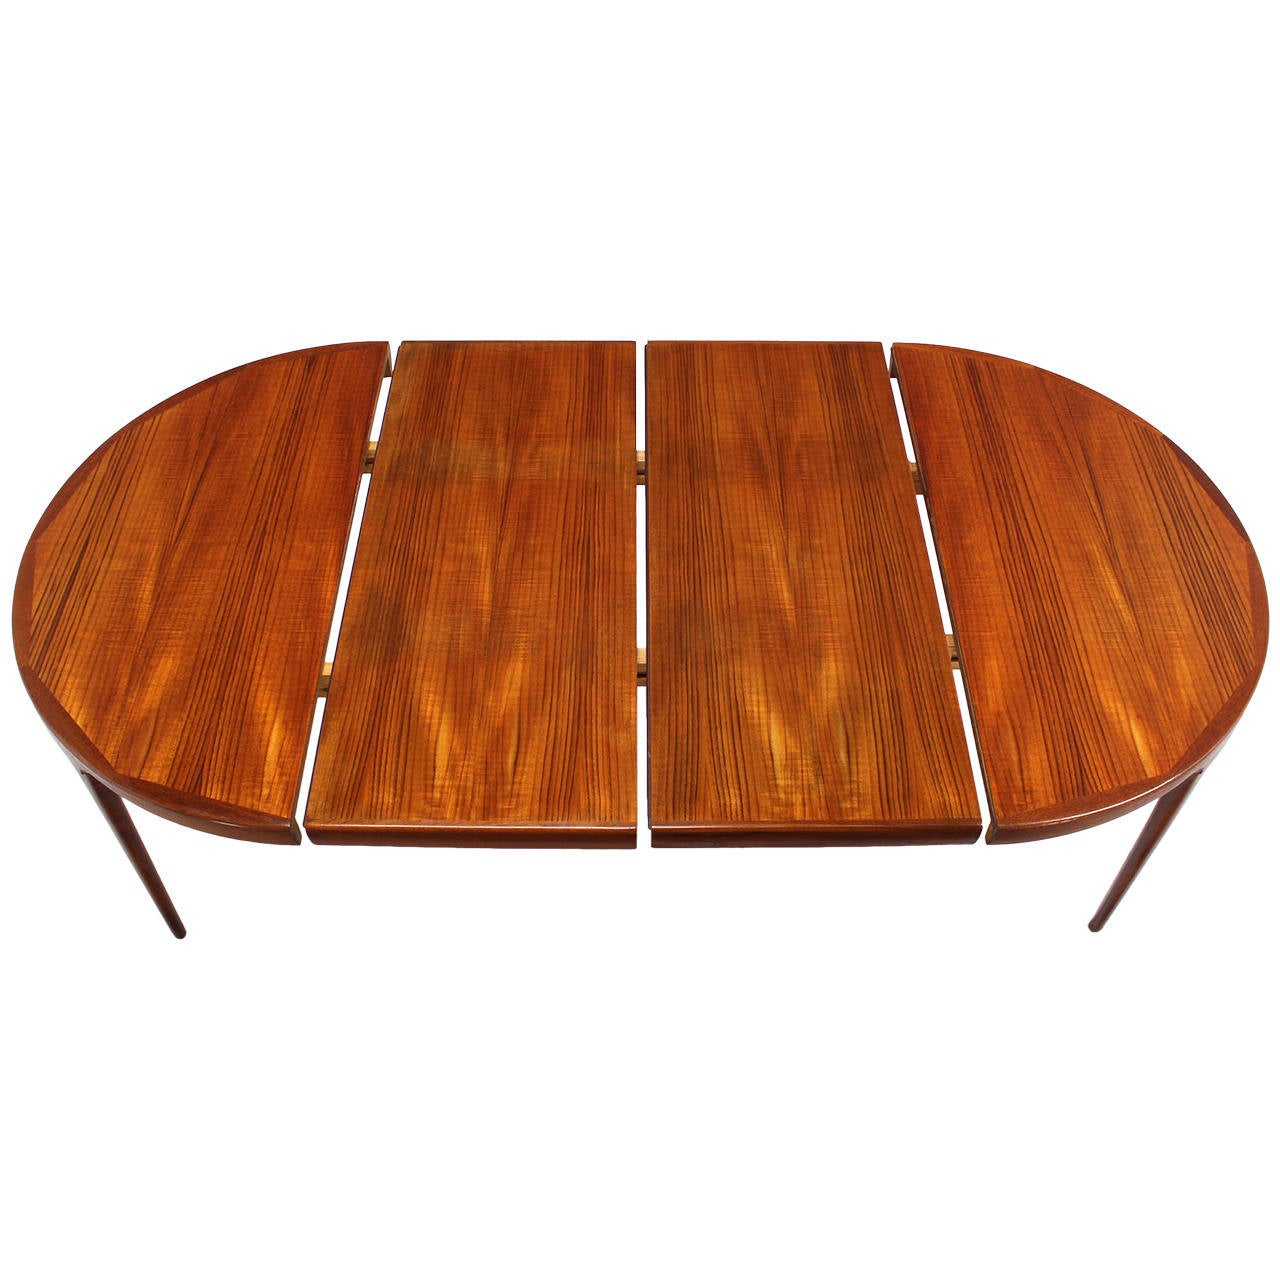 Danish mid century modern round teak dining table with two for Dining table with two leaves